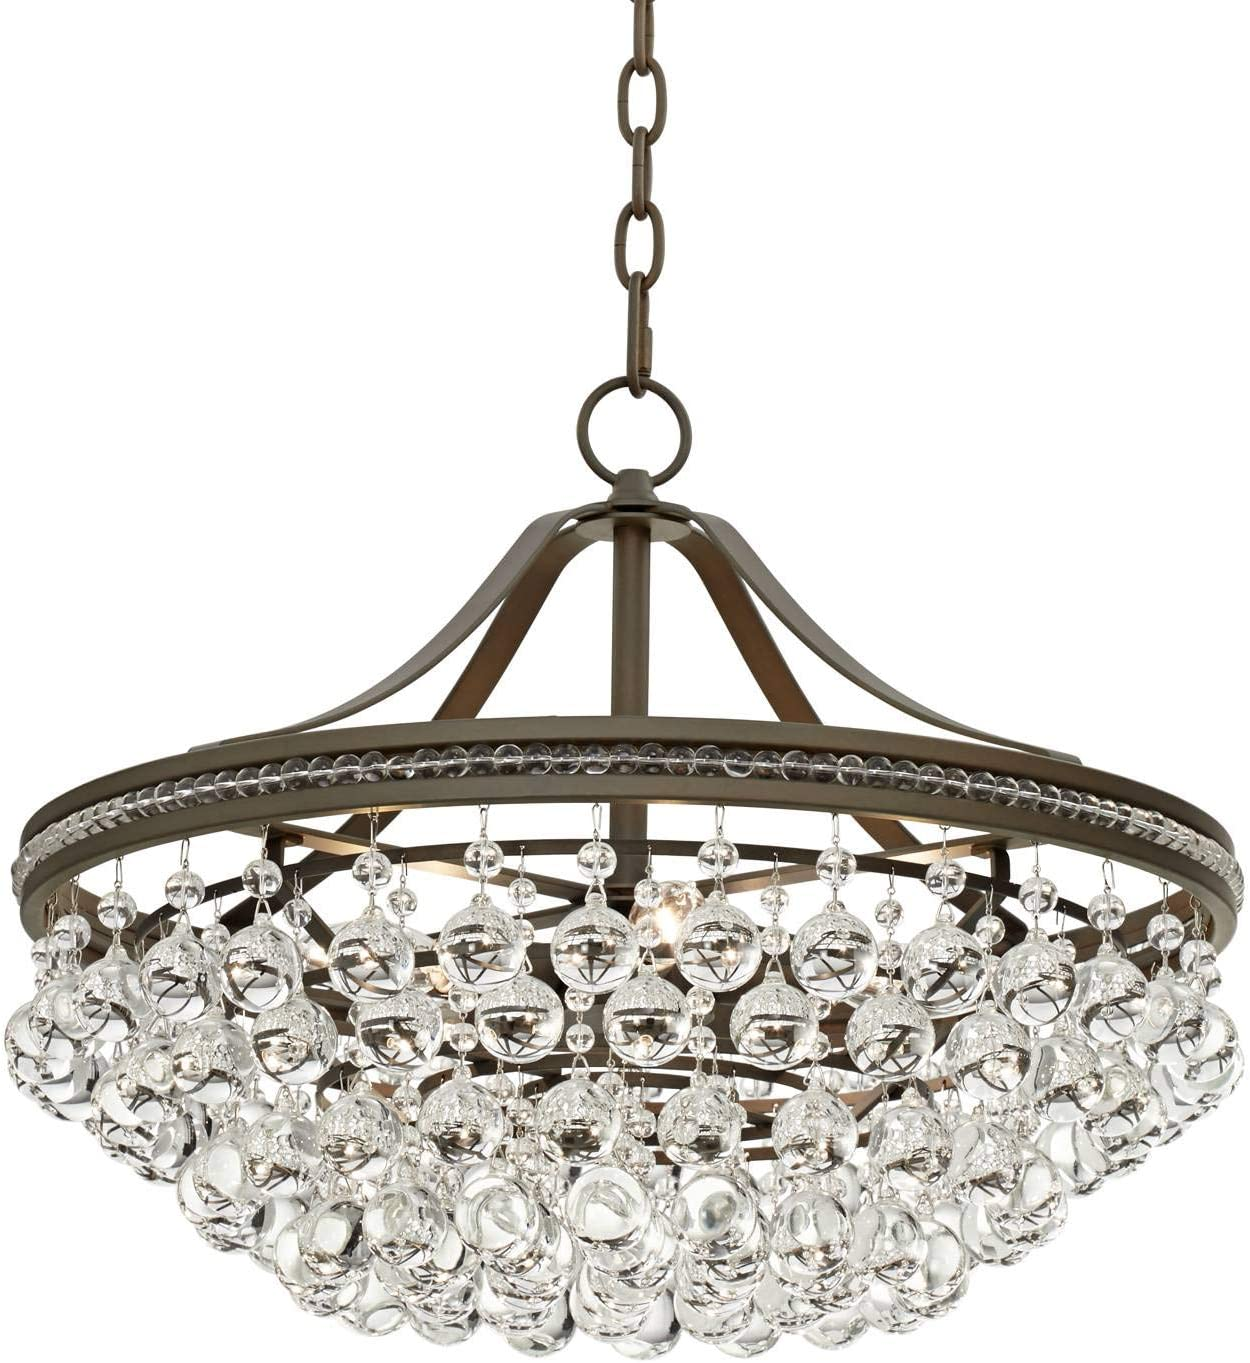 Wohlfurst Bronze Pendant Chandelier 20 1 4 Wide Clear Crystal 5-Light Fixture for Dining Room House Foyer Kitchen Island Entryway Bedroom Living Room – Vienna Full Spectrum